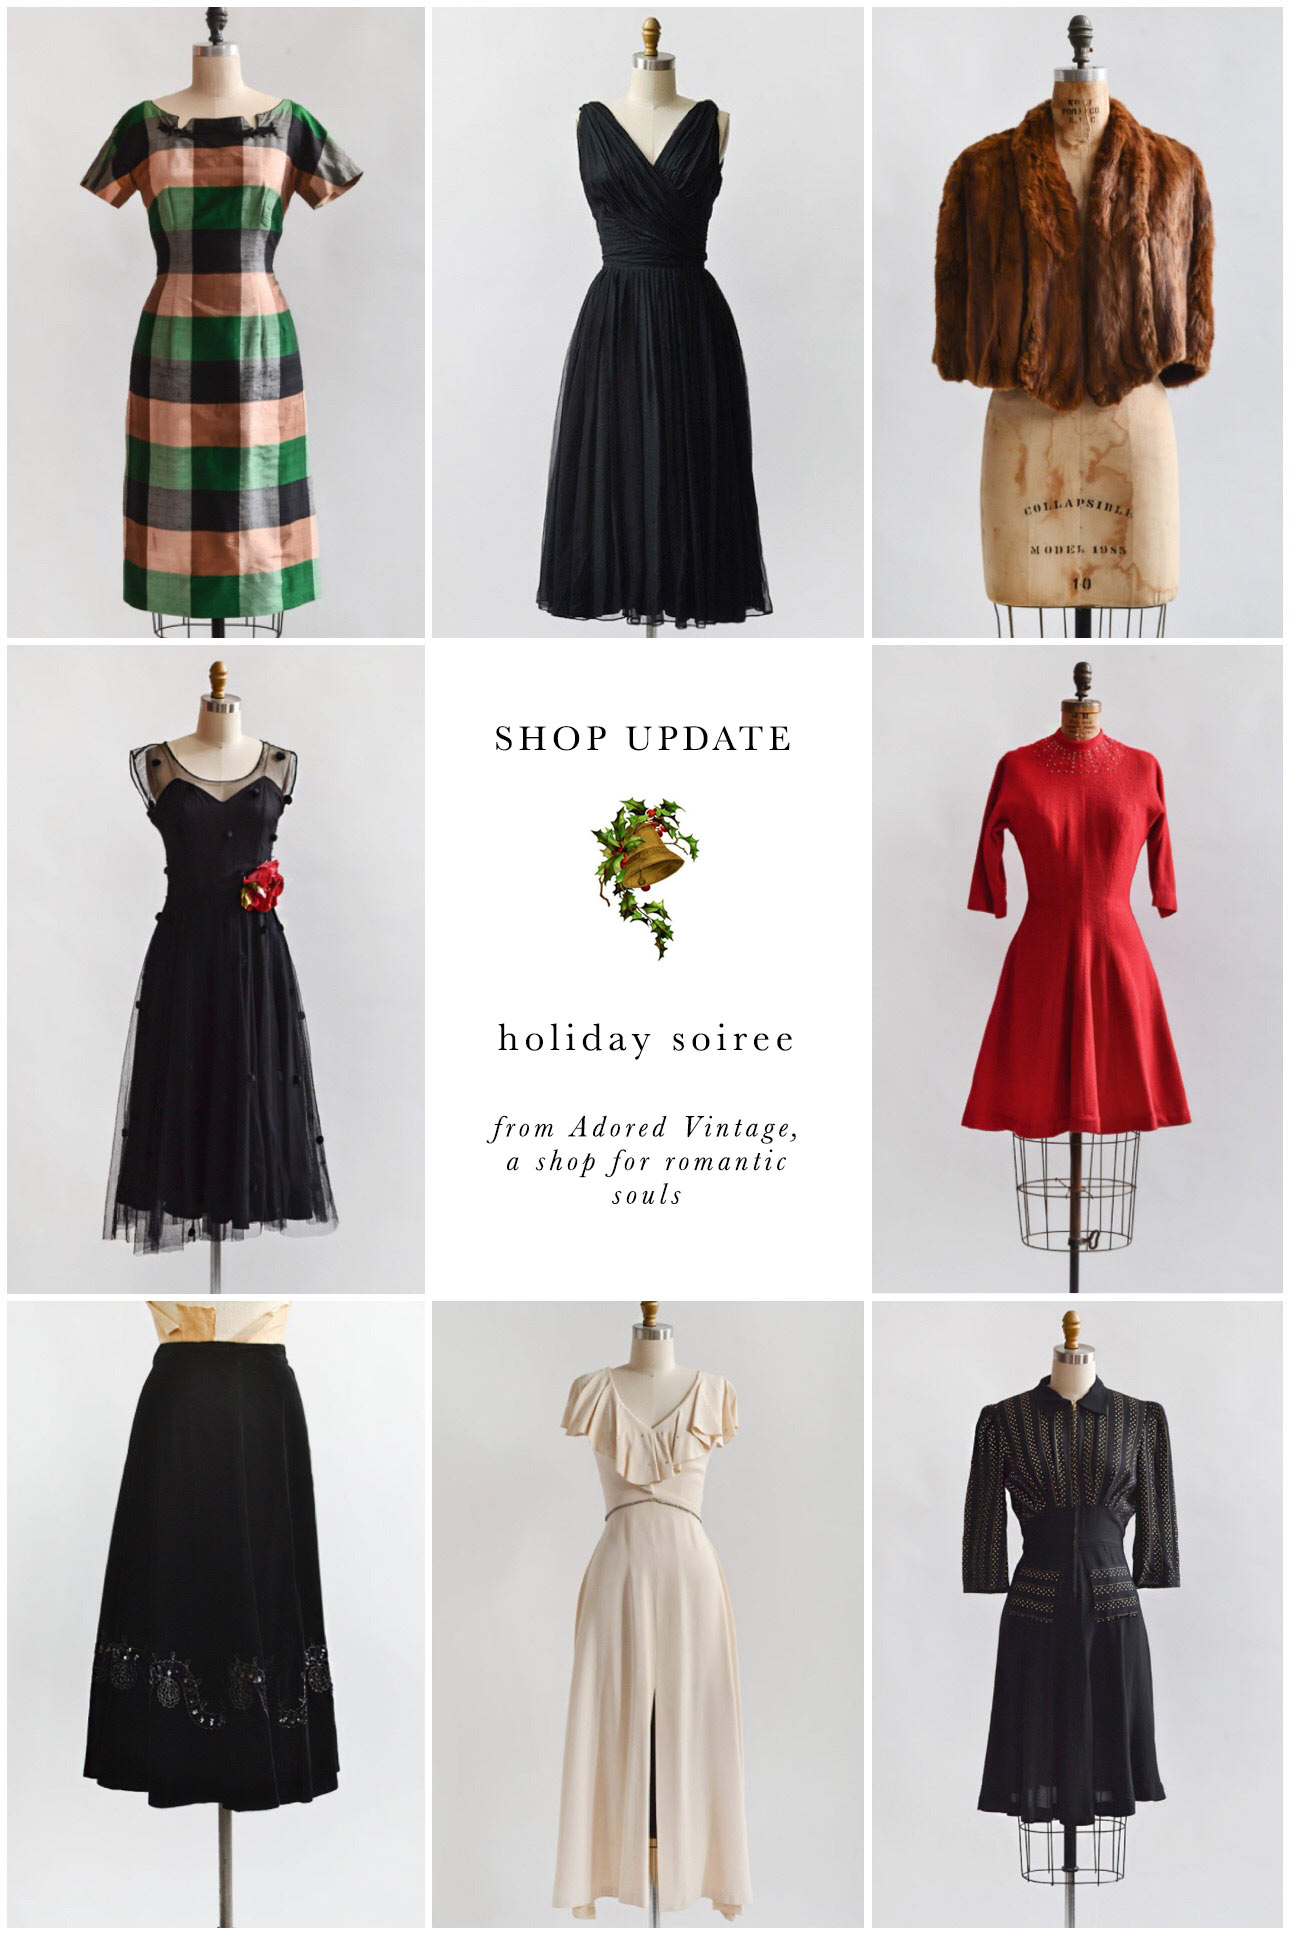 https://www.adoredvintage.com/collections/holiday-looks